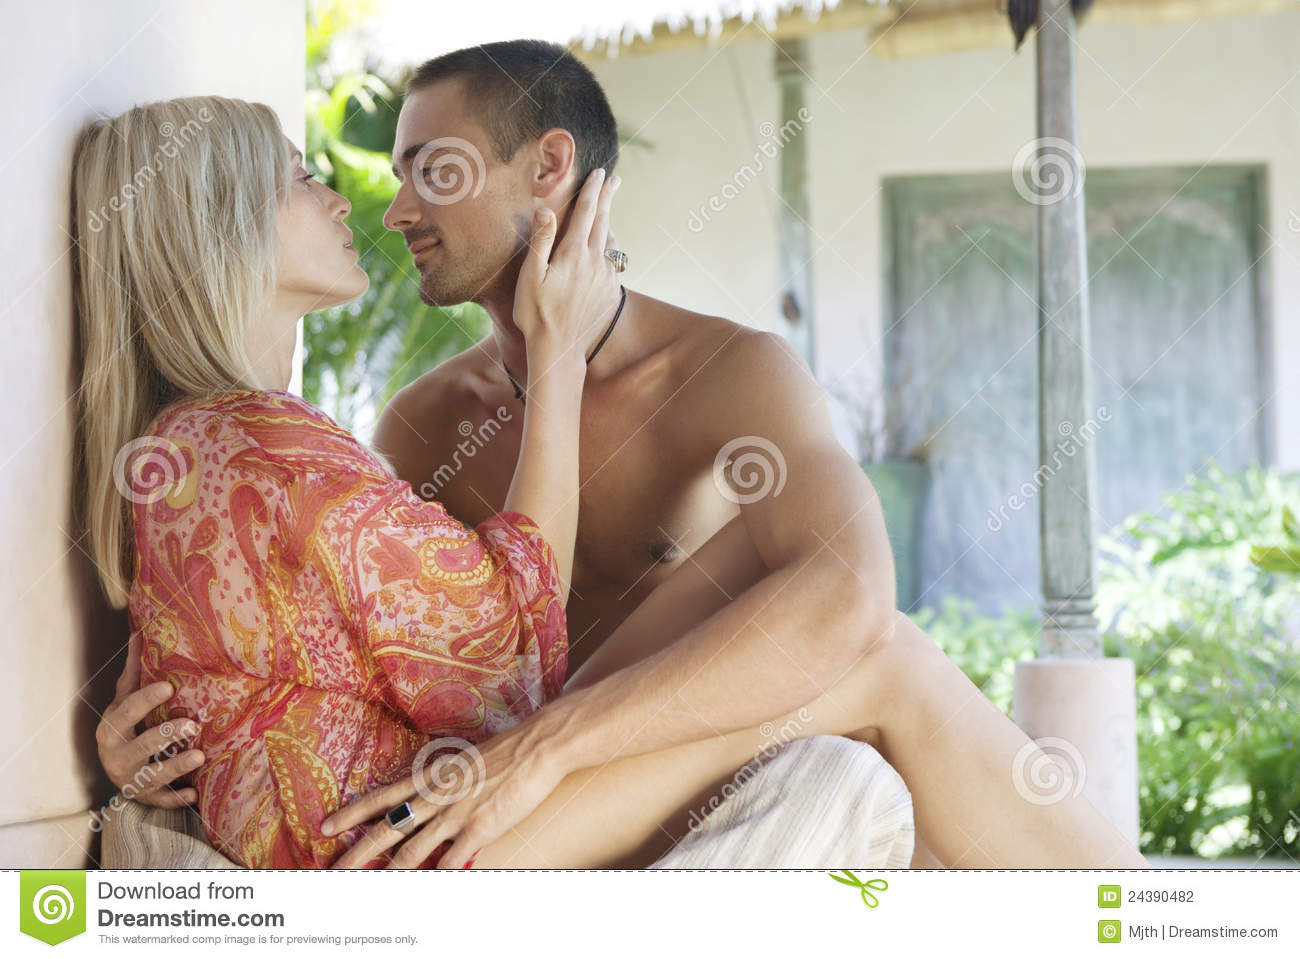 Bali 1 couple courtyard kissing stock photo image 24390482 for Luxury spa weekends for couples